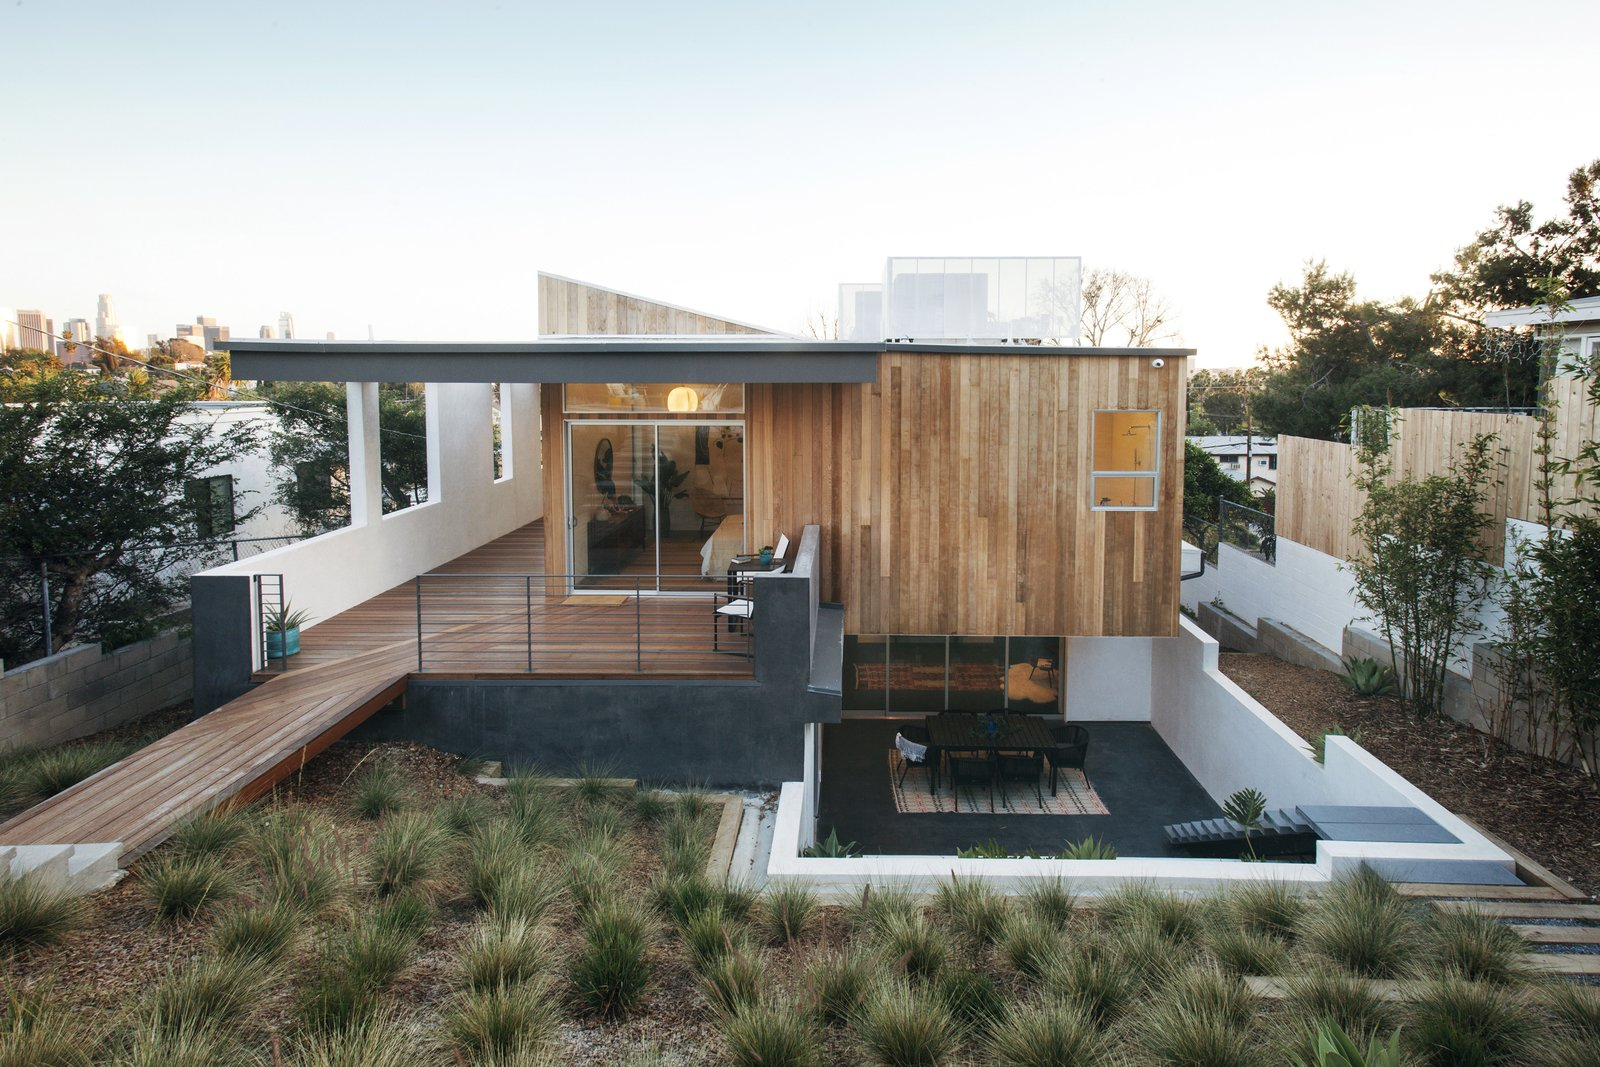 """Outdoor, Large Patio, Porch, Deck, Shrubs, Horizontal Fences, Wall, Decking Patio, Porch, Deck, Back Yard, Hardscapes, Trees, Metal Fences, Wall, Wood Patio, Porch, Deck, Vertical Fences, Wall, Wood Fences, Wall, Concrete Fences, Wall, and Retaining Fences, Wall """"We wanted to 'cap' the dwelling with a generous, almost sweeping canopy that would keep the majority of the high sun exposure areas in shade,"""" says Pande. """"We also played with the roof volume to break free from the constraints of a typical 'box modern' home.""""  Photo 3 of 17 in A Tiered Home in Los Angeles Hugs a Steep Slope"""